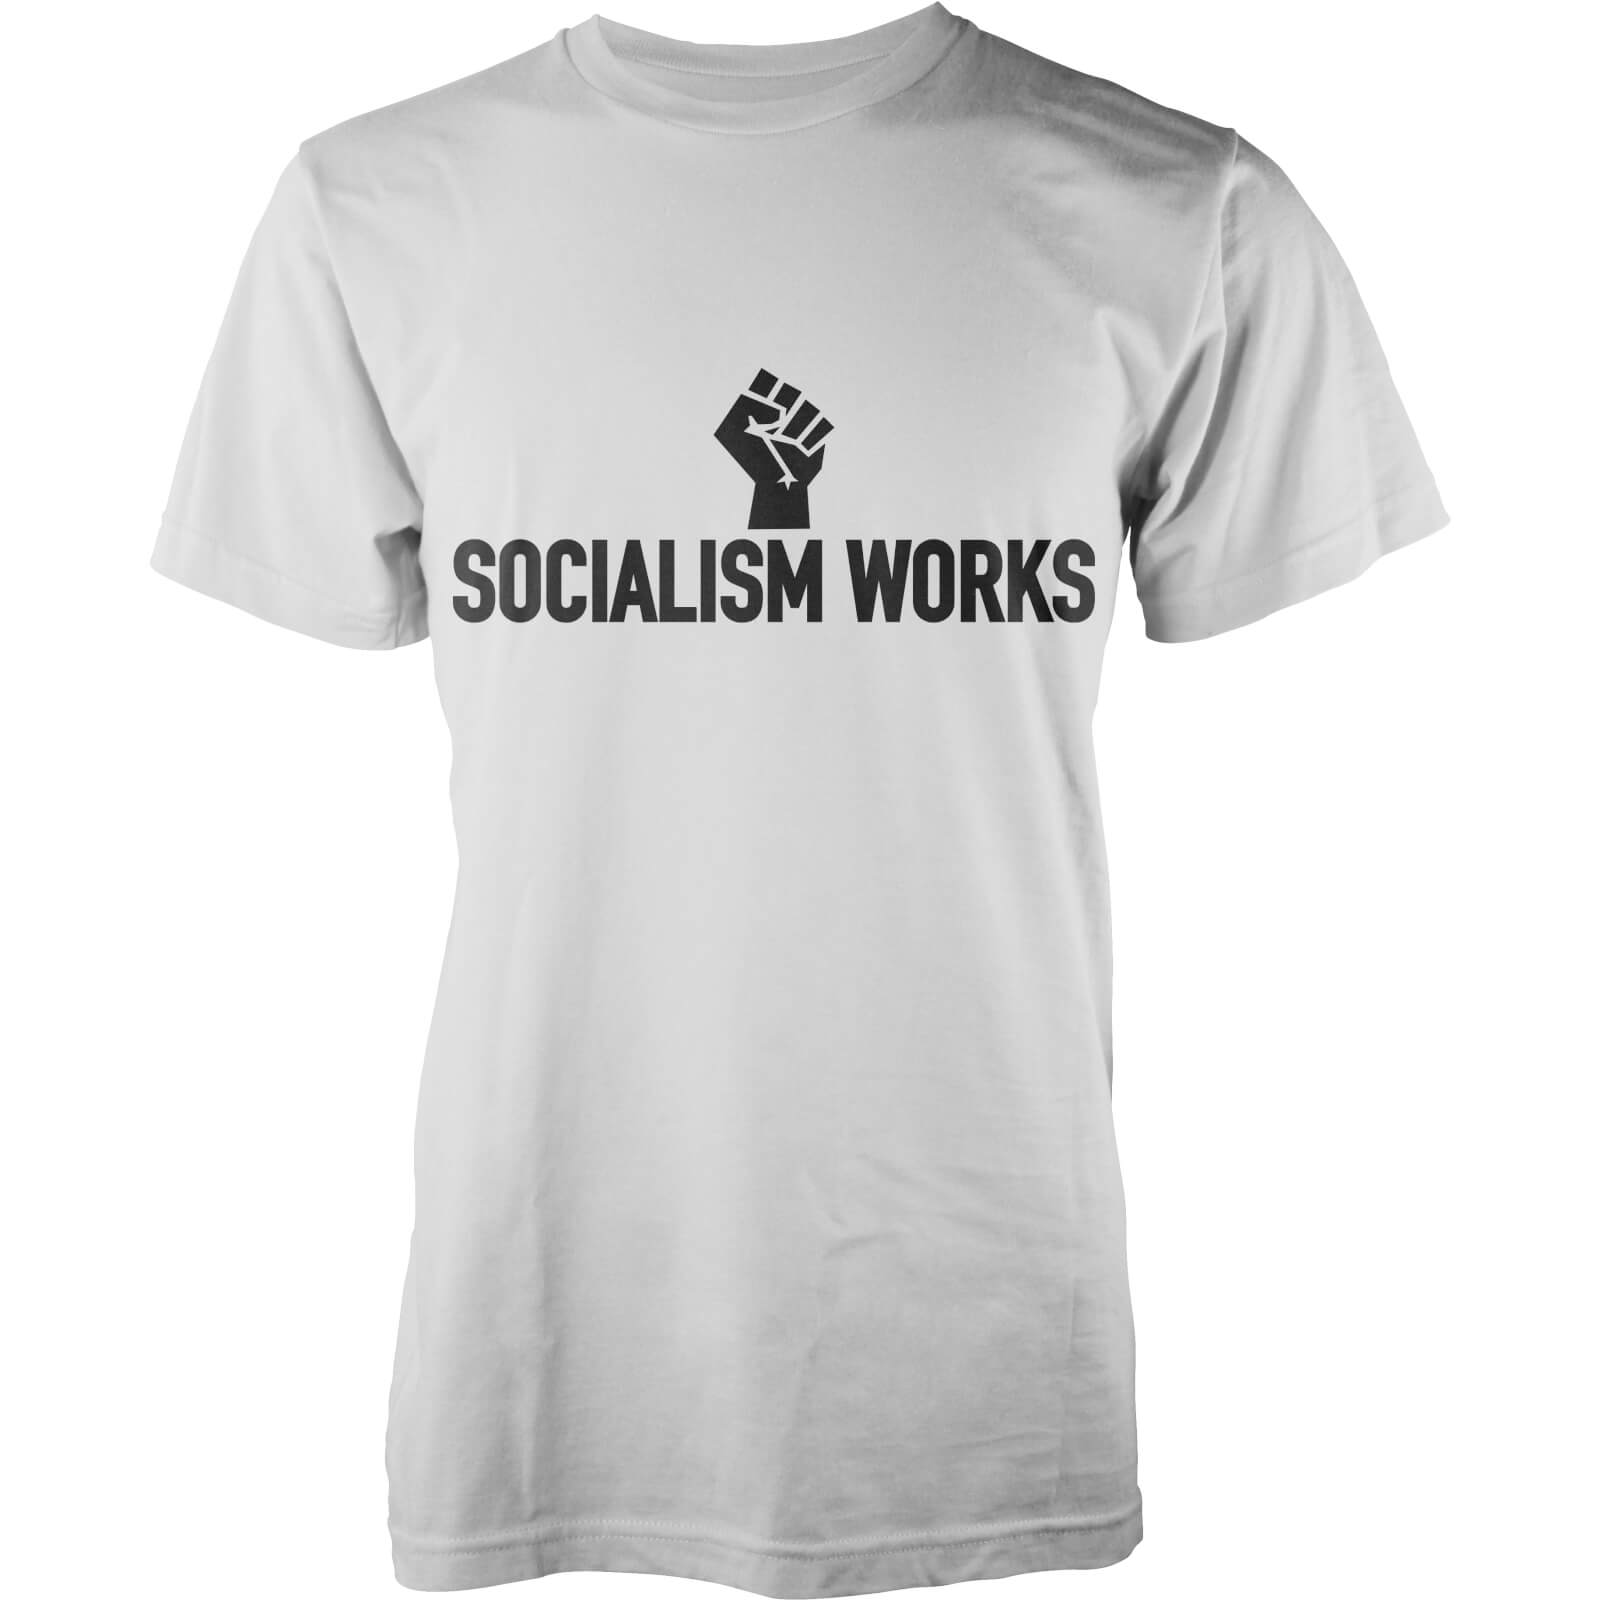 Socialism Works T-Shirt - White